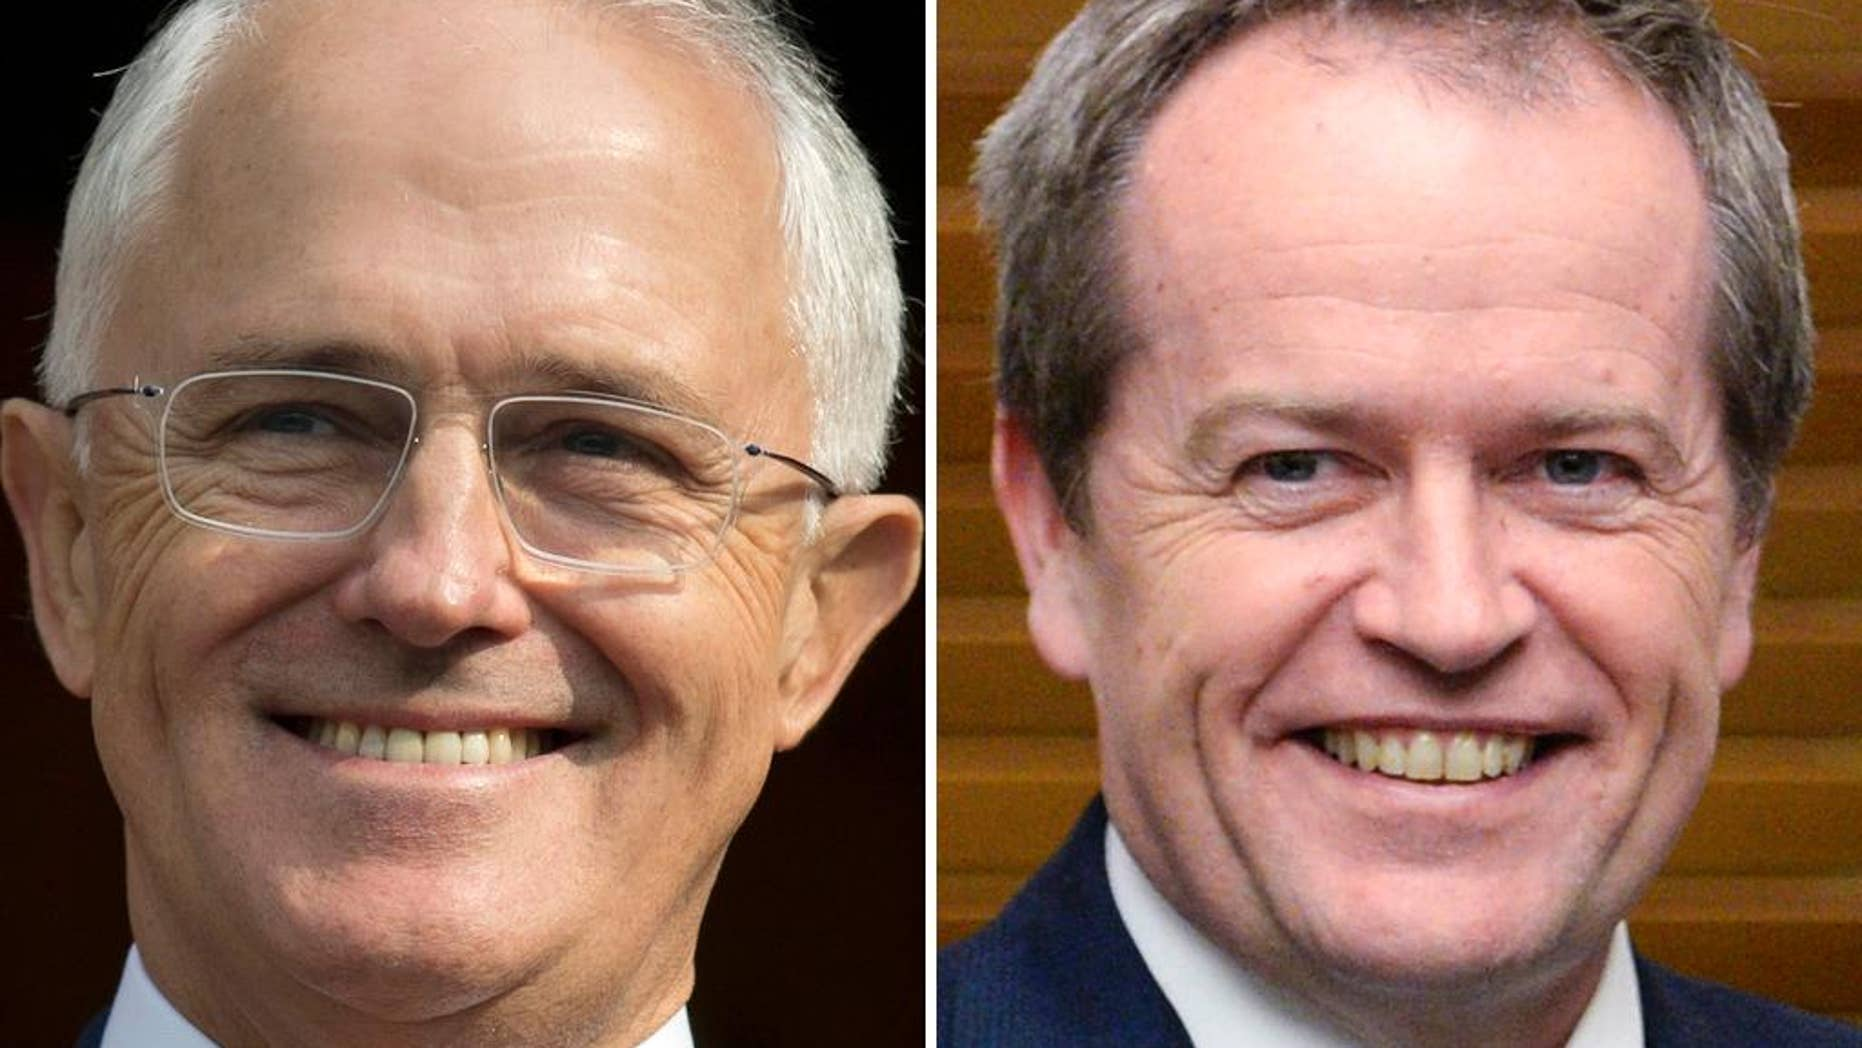 "FILE - This combination of file photos from April 15, 2016, and July 8, 2014, shows Australian Prime Minister Malcolm Turnbull, left, and Australian opposition leader Bill Shorten. Australian independent Sen. Nick Xenophon compared his country's contest to the widely popular 1990s American sitcom 'Seinfeld,' known as a ""show about nothing."" In his comparison he says, ""This is almost a 'Seinfeld' election _ it's an election about not much at all.""  (AP Photo/Files)"